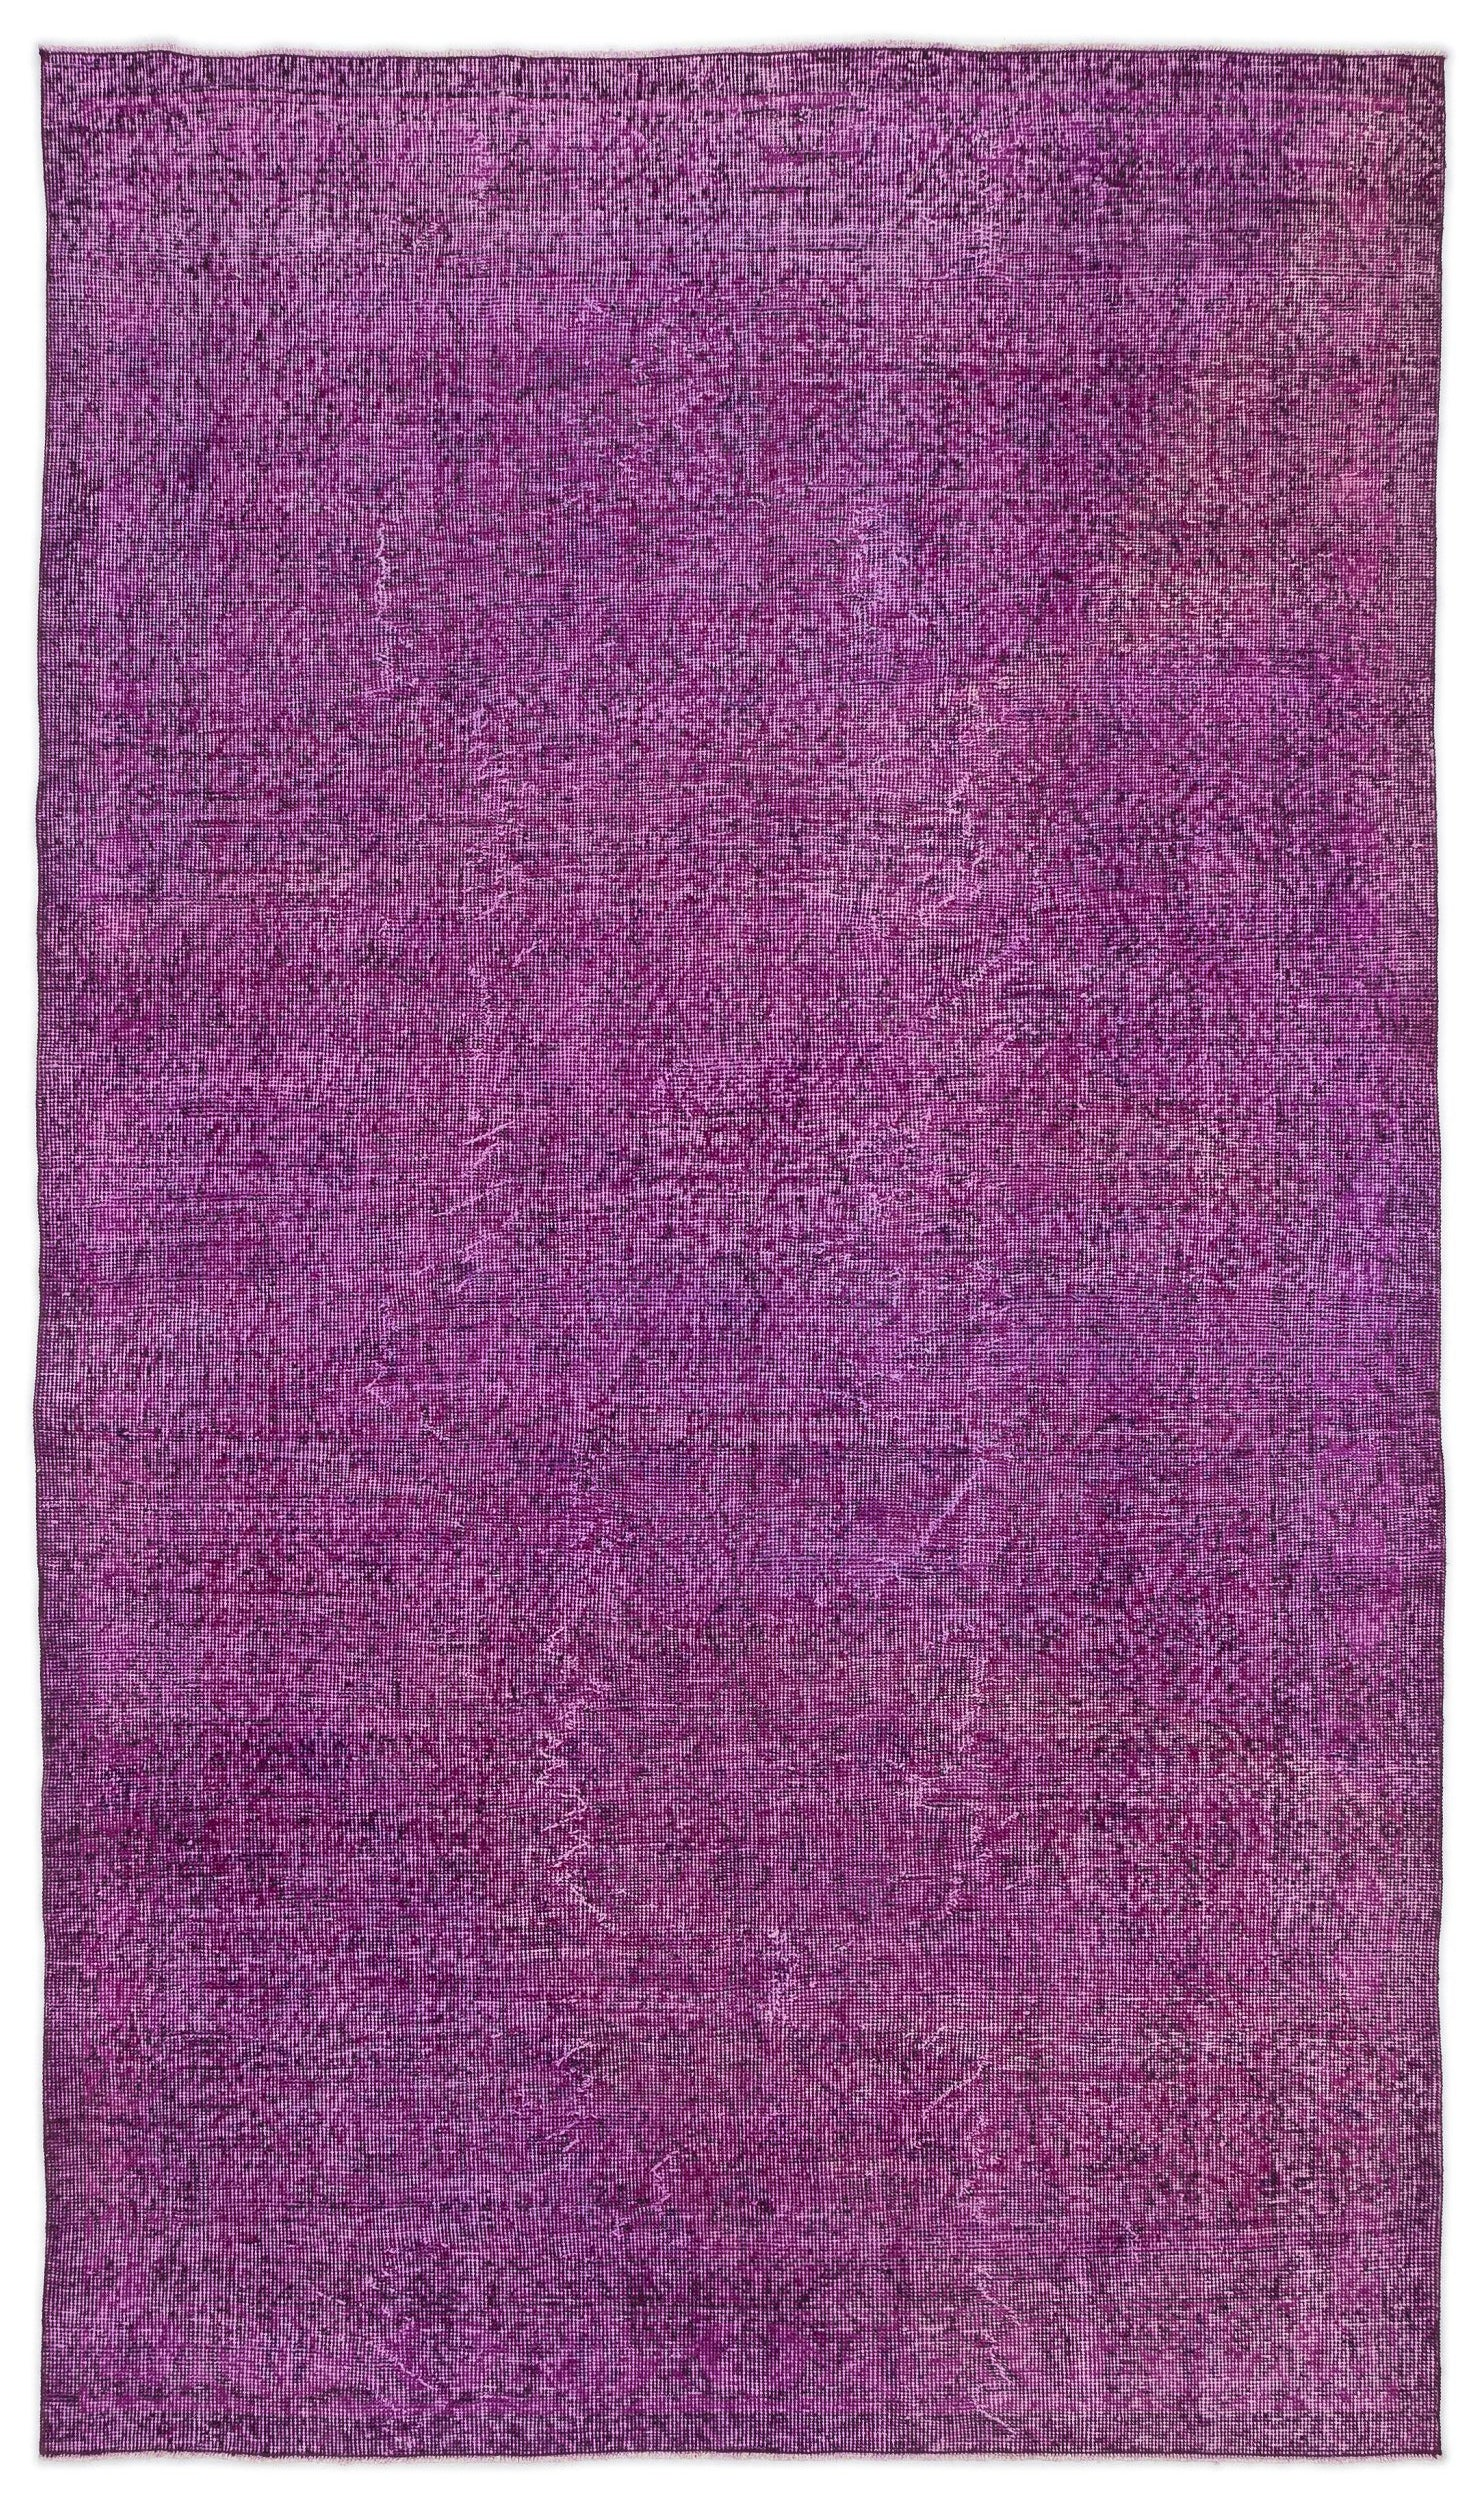 Fuchsia Over Dyed Vintage Rug 4'11'' x 8'7'' ft 151 x 262 cm